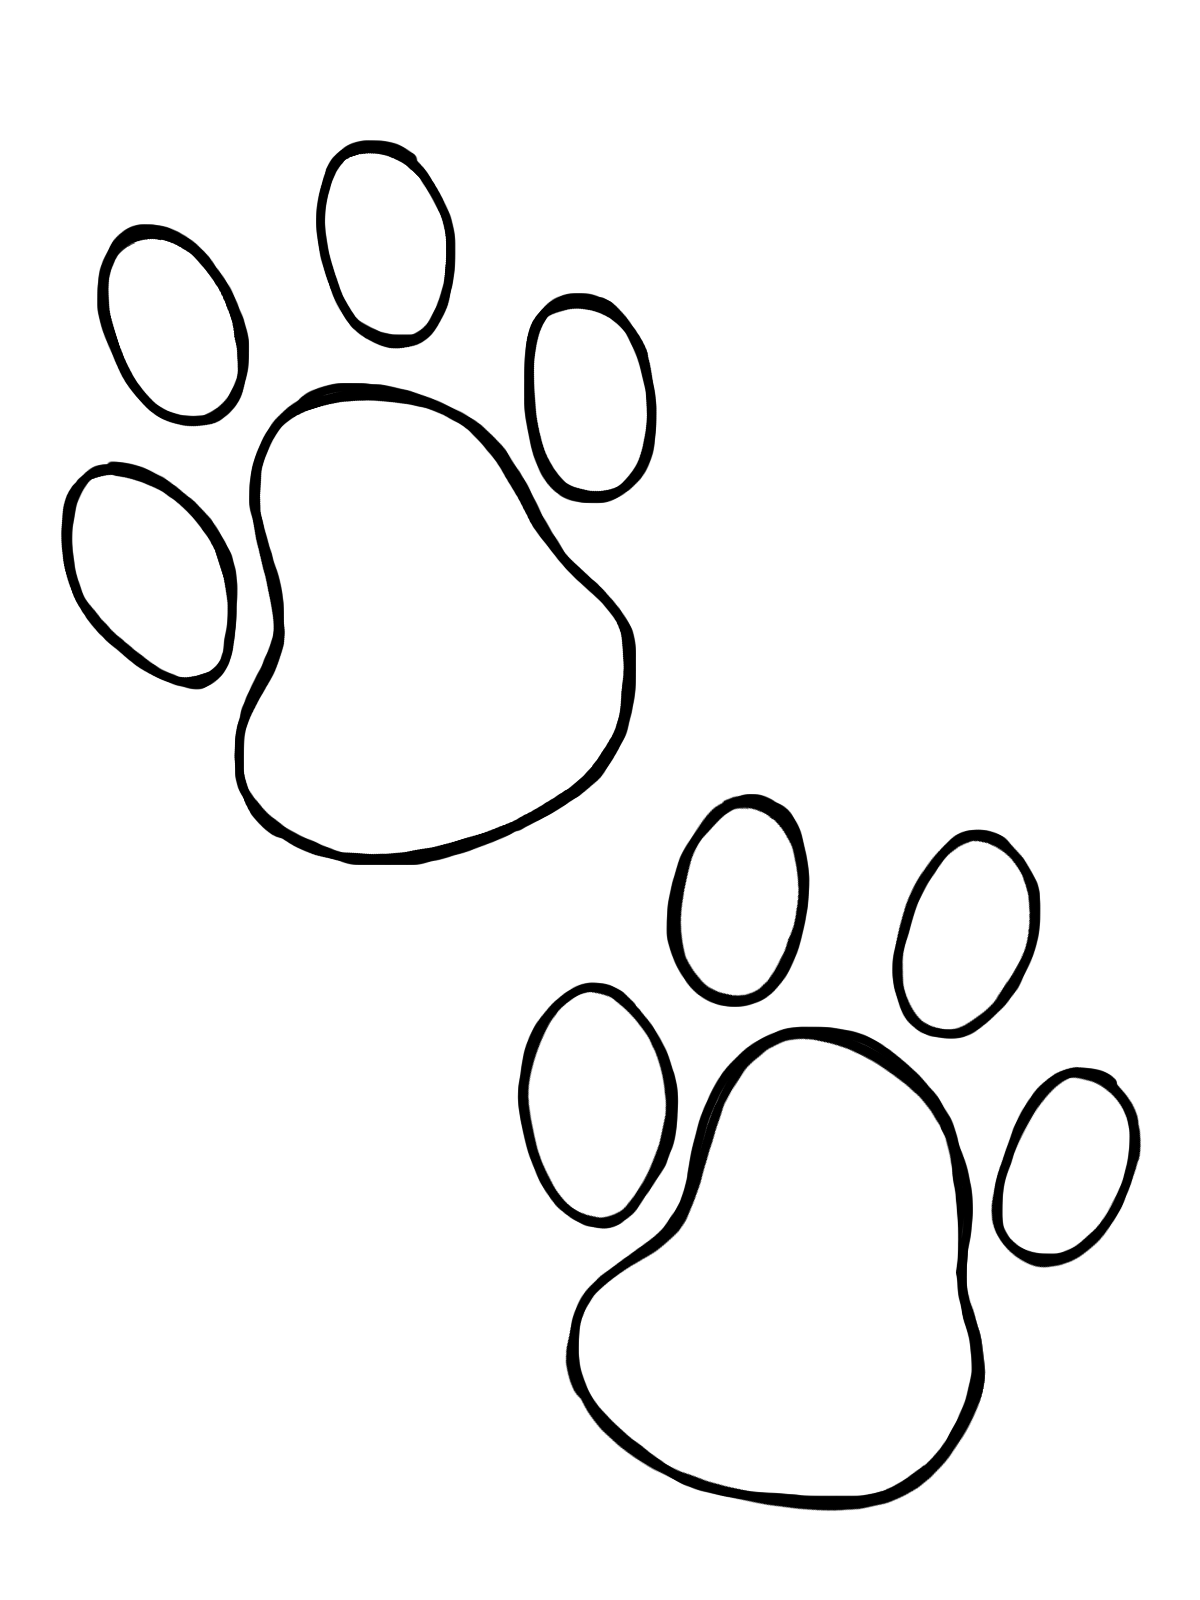 Clip Art By Carrie Teaching First Pets Doodles With